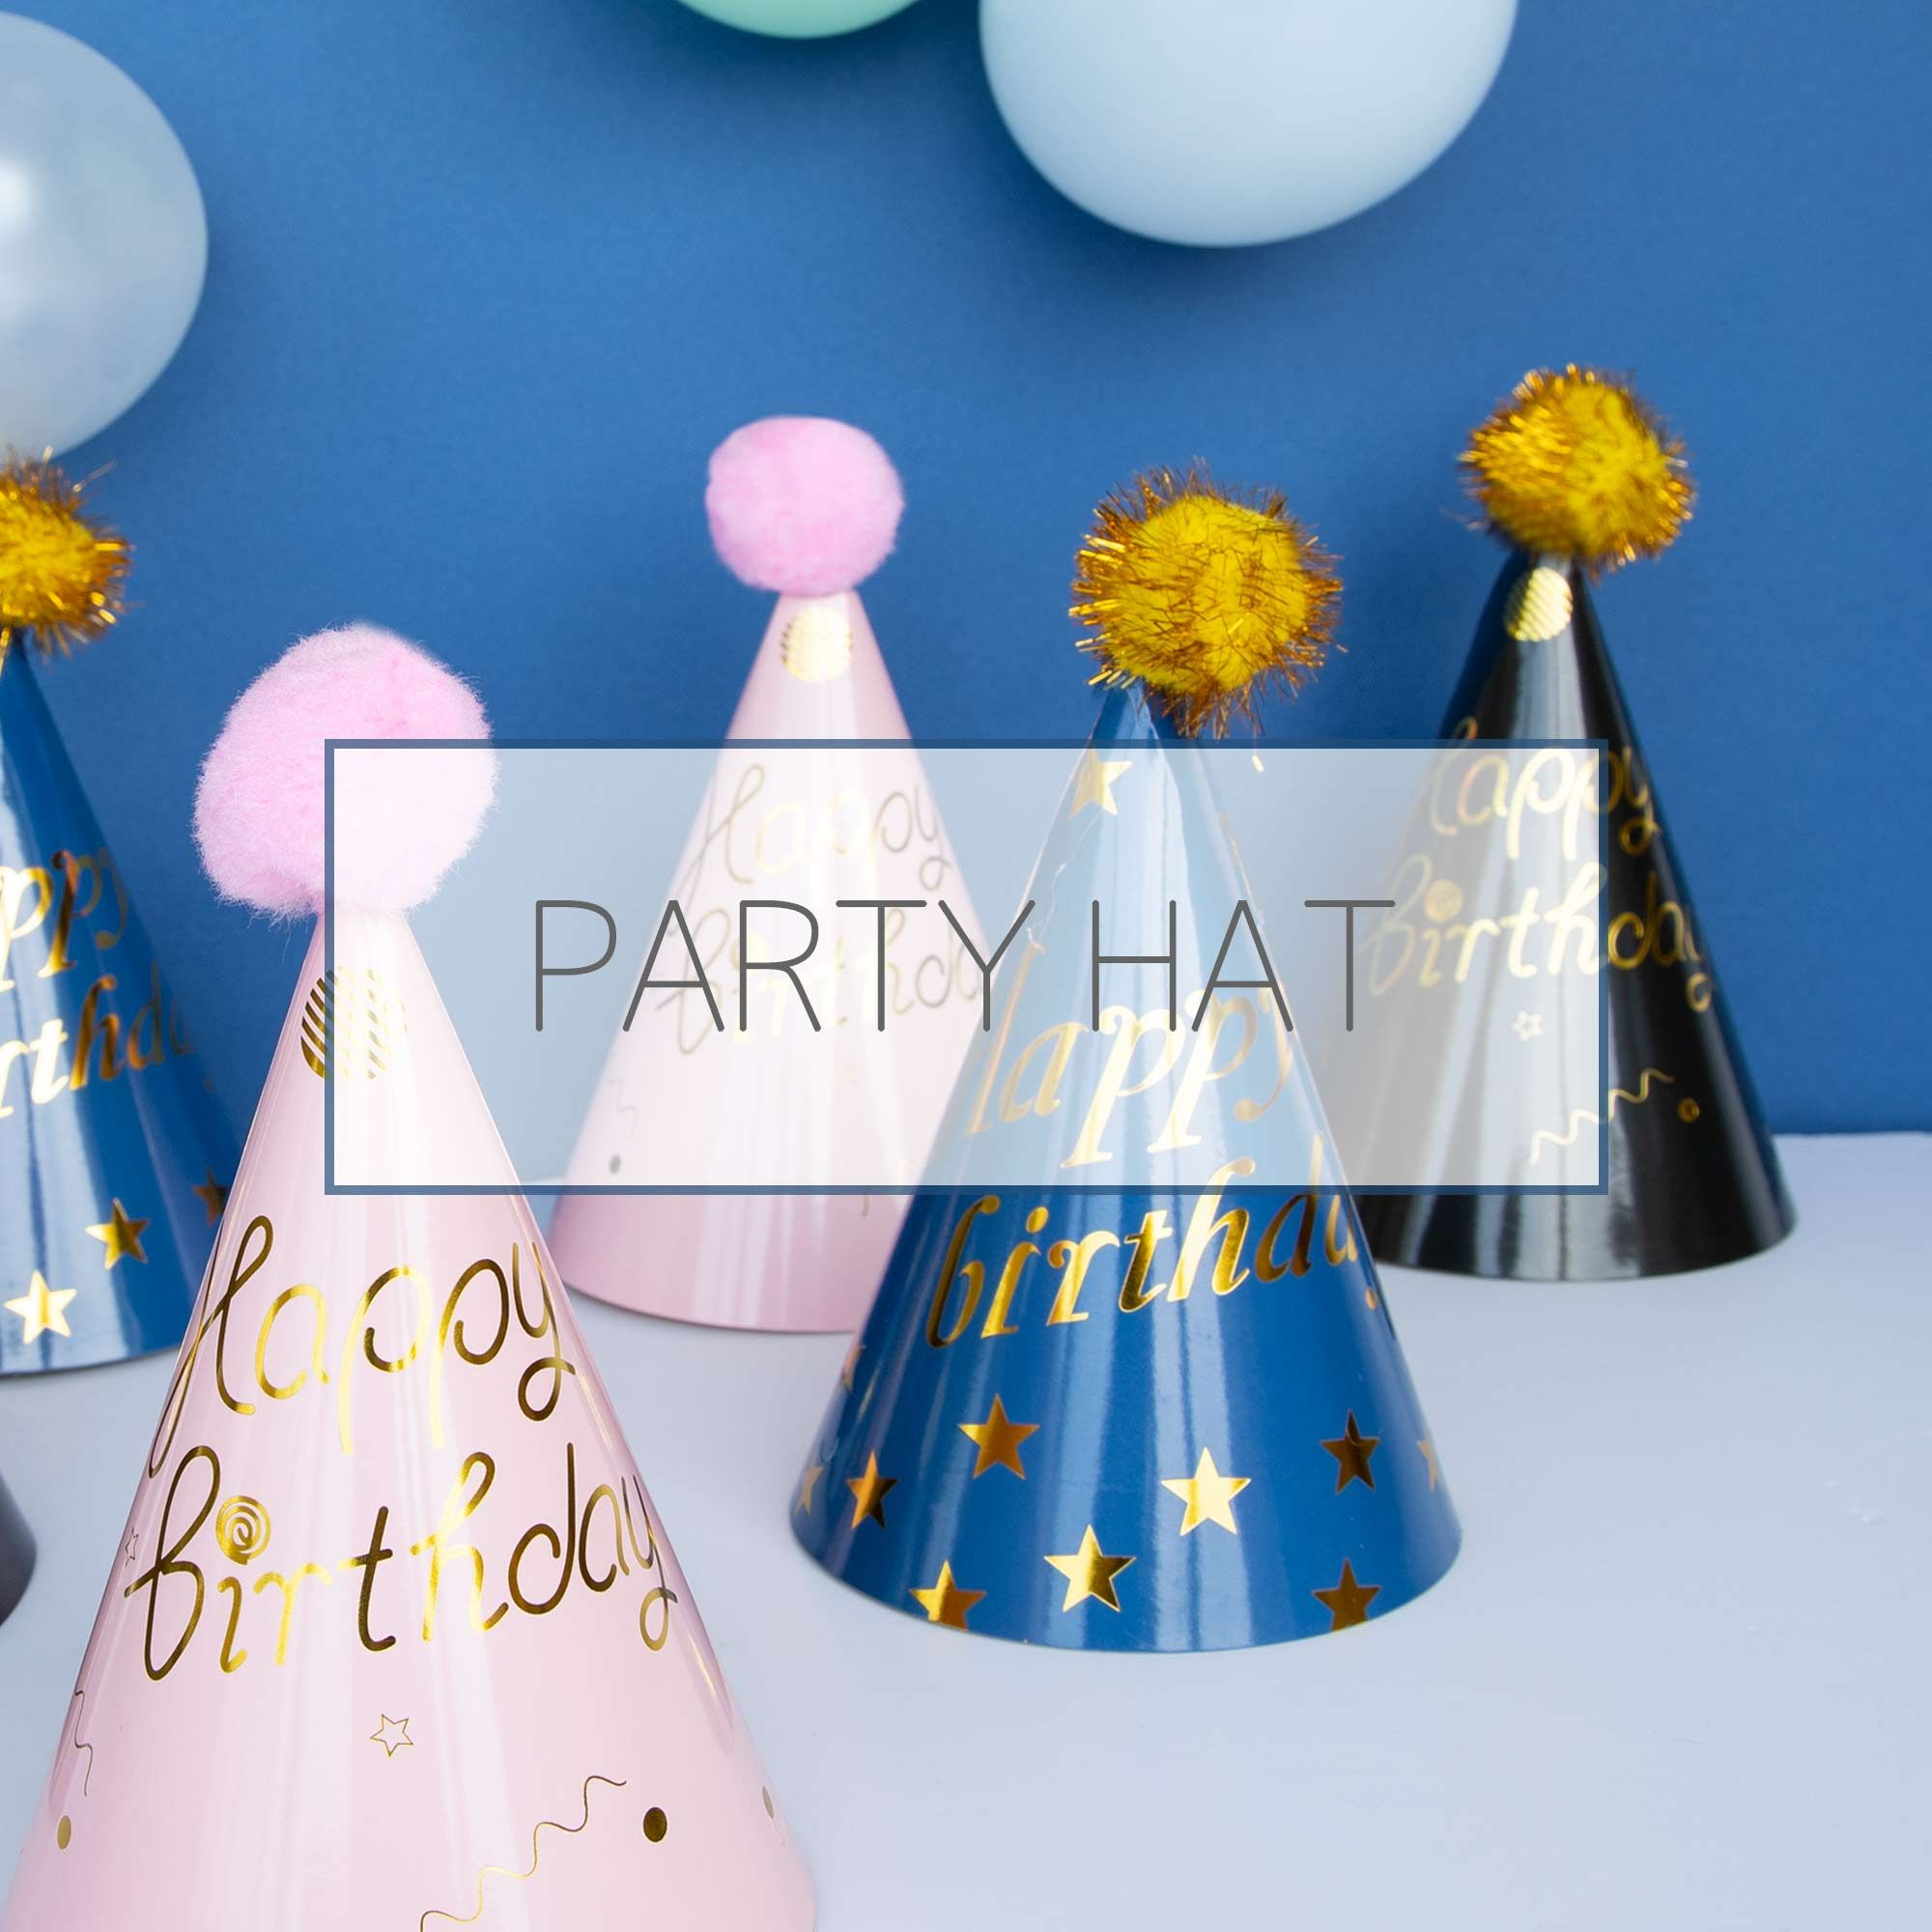 Party Hat - Colorful party hats for a birthday or any anniversary